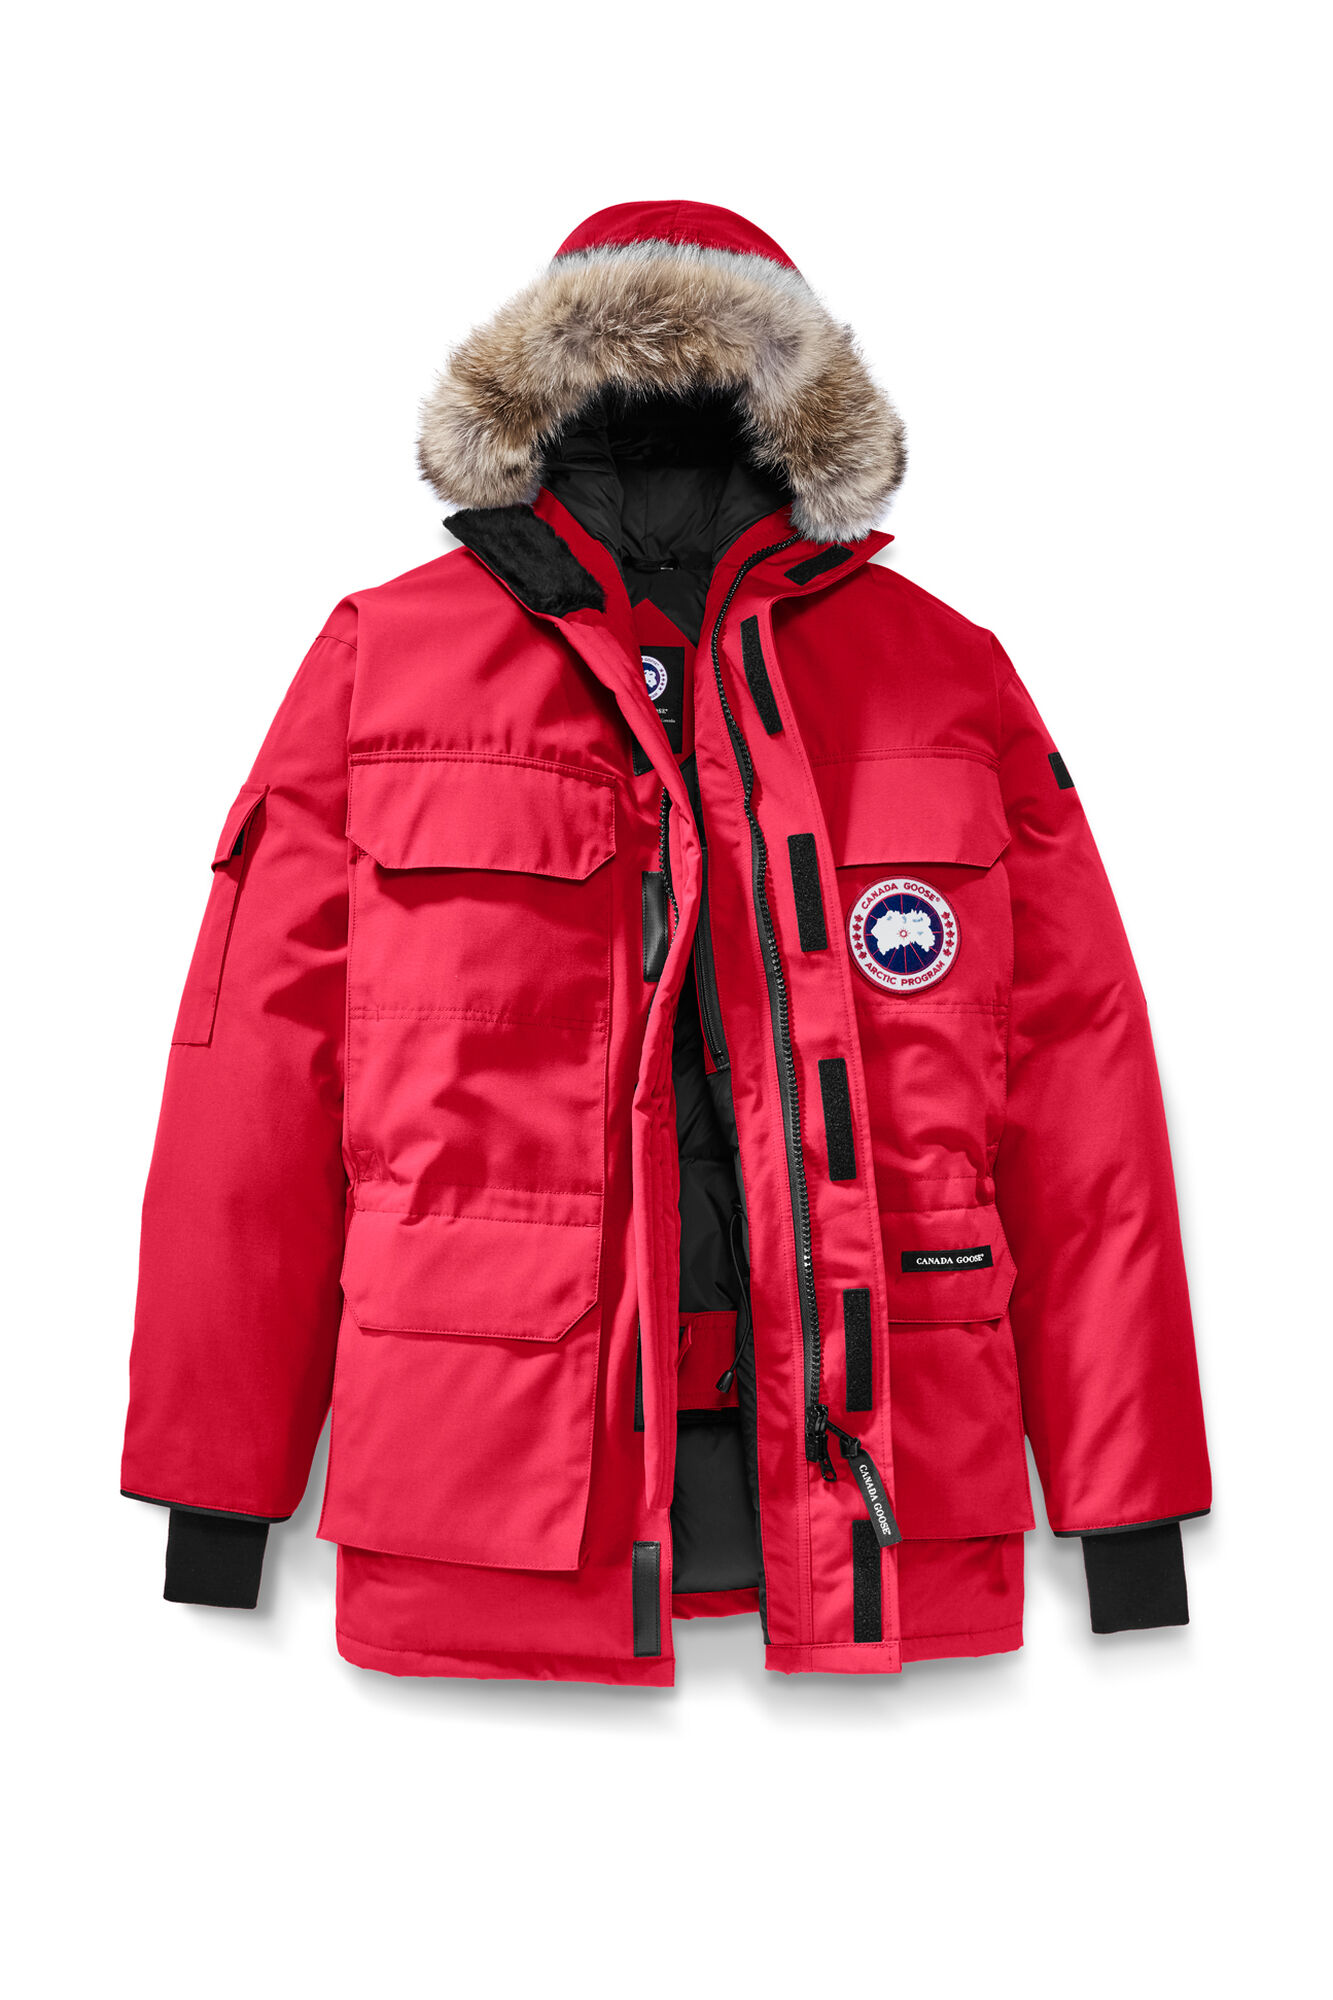 Canada Goose victoria parka replica fake - Men's Arctic Program Expedition Parka | Canada Goose?